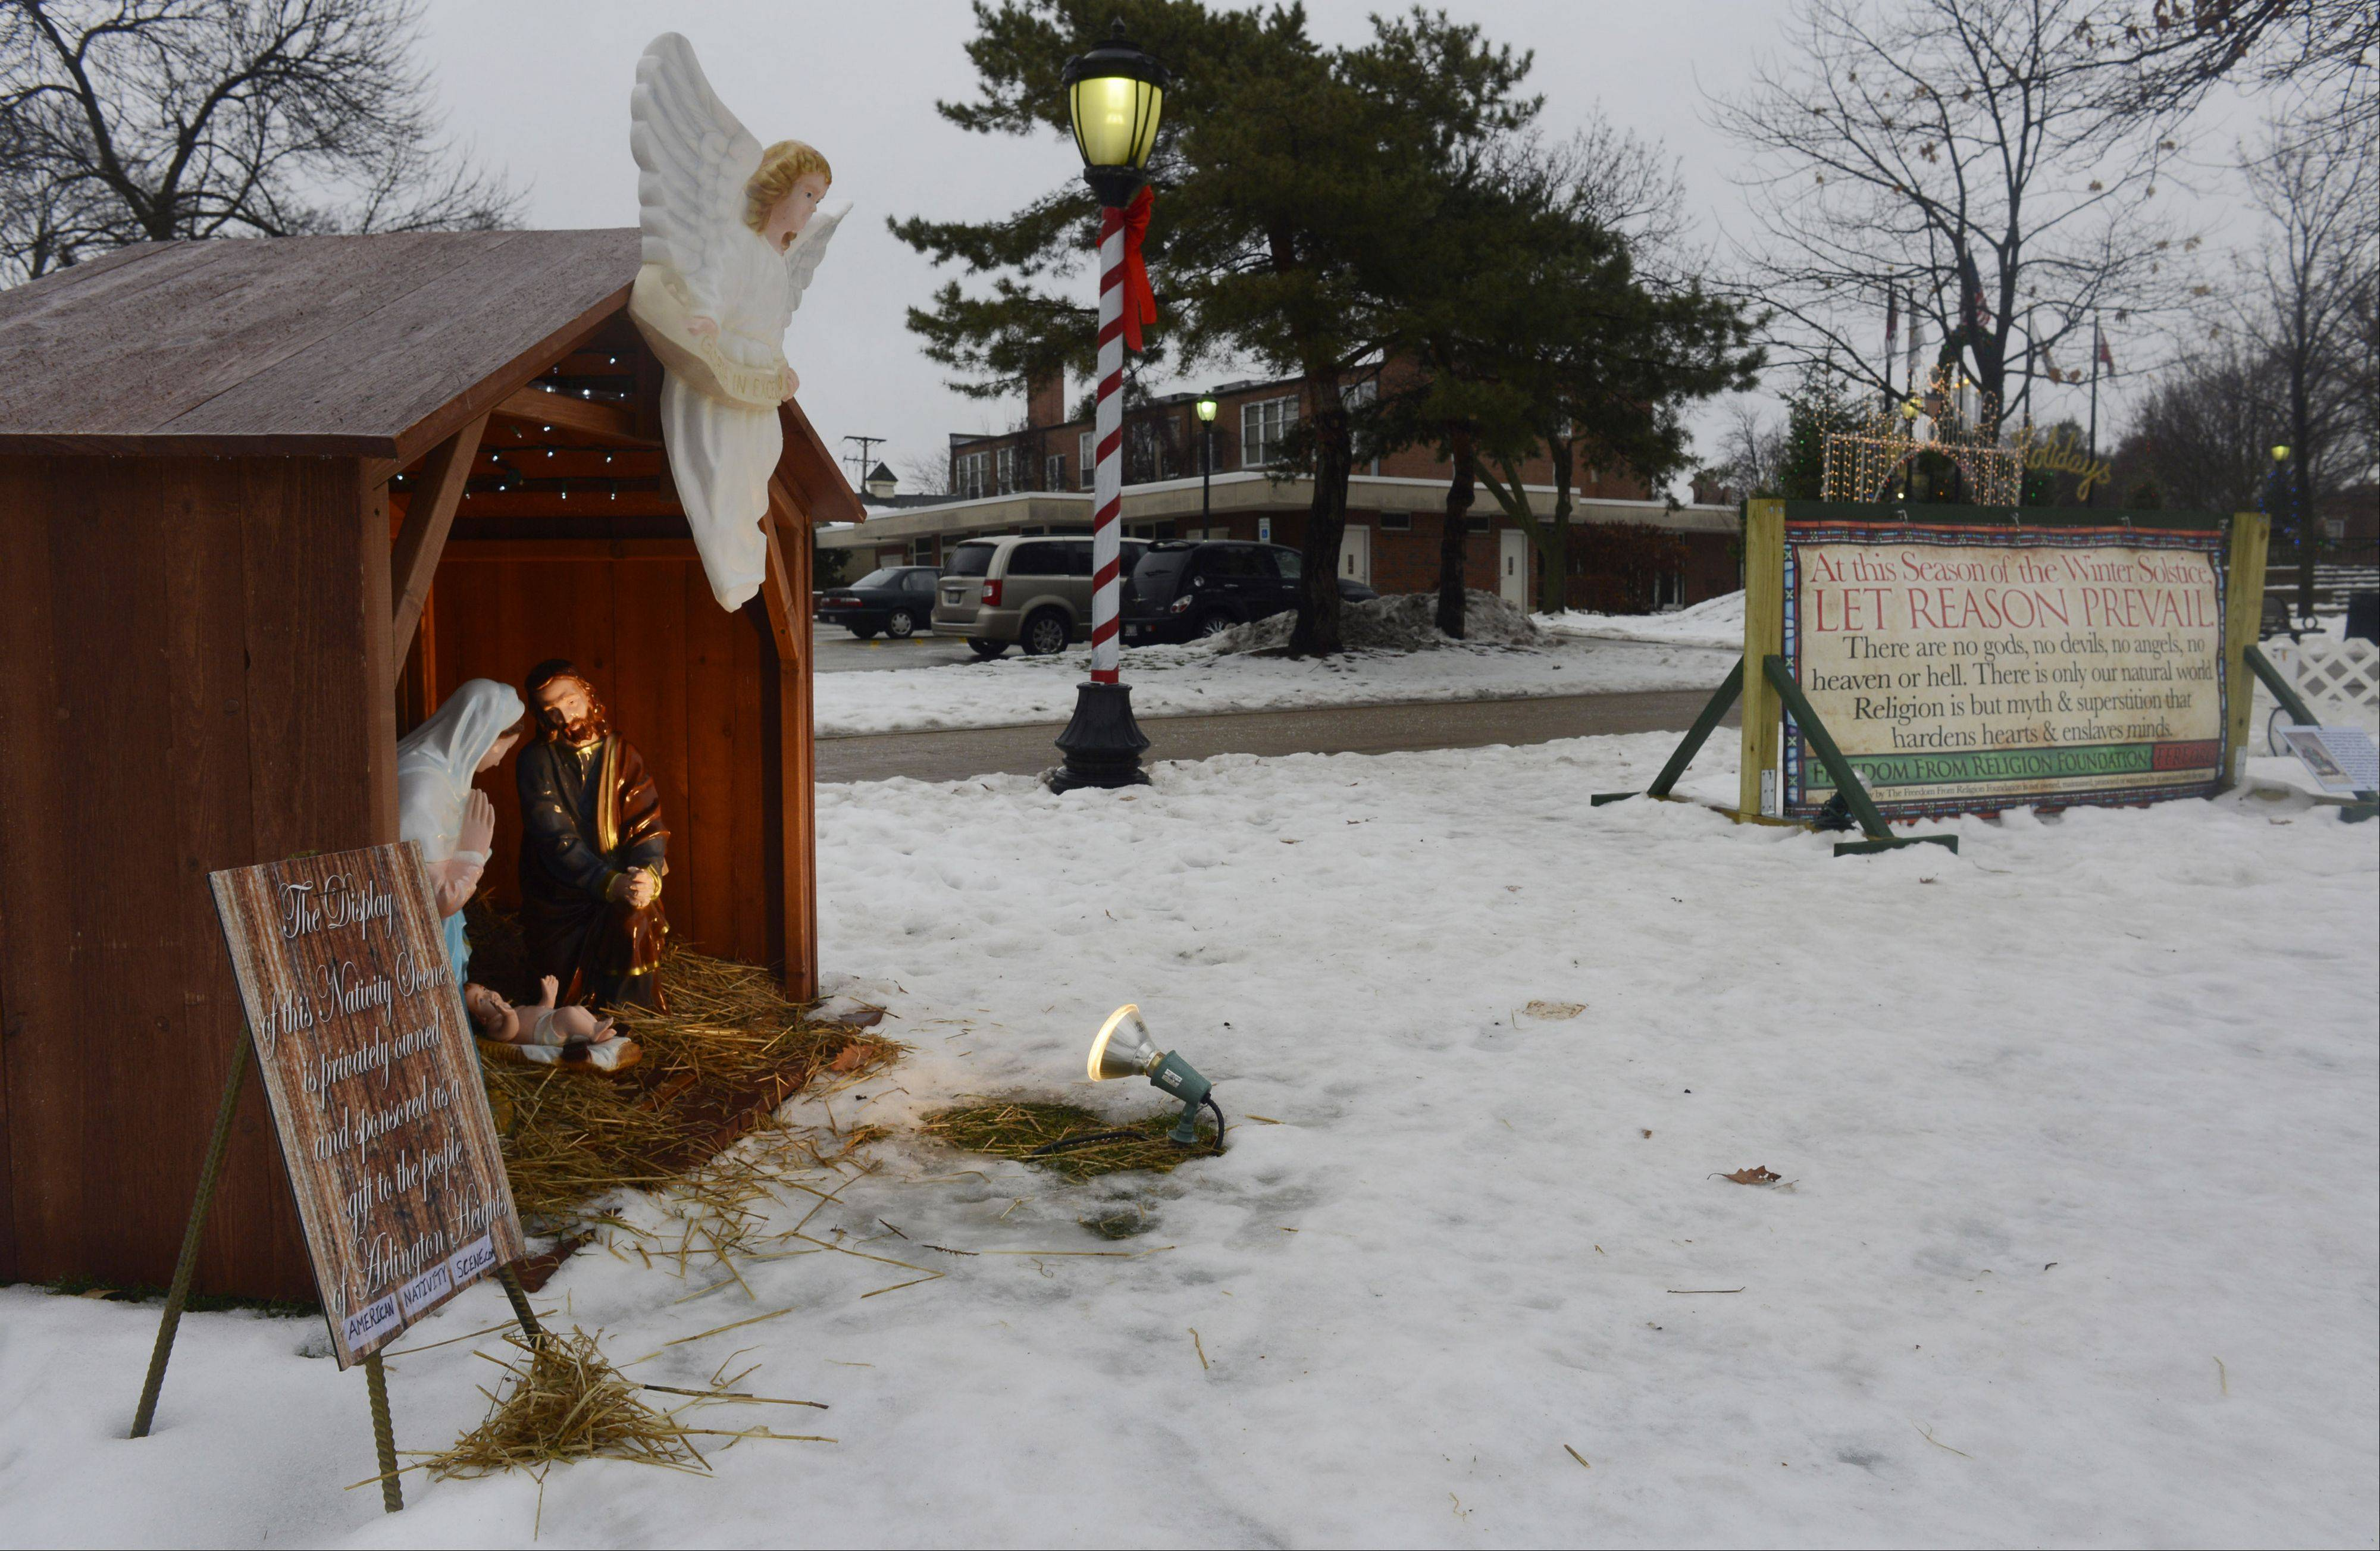 Last year, the Illinois Nativity Scene Committee pushed for permission to place a Nativity scene in North School Park in Arlington Heights. The Freedom From Religion Foundation responded with a sign opposing religion, at right. Both are back this year.